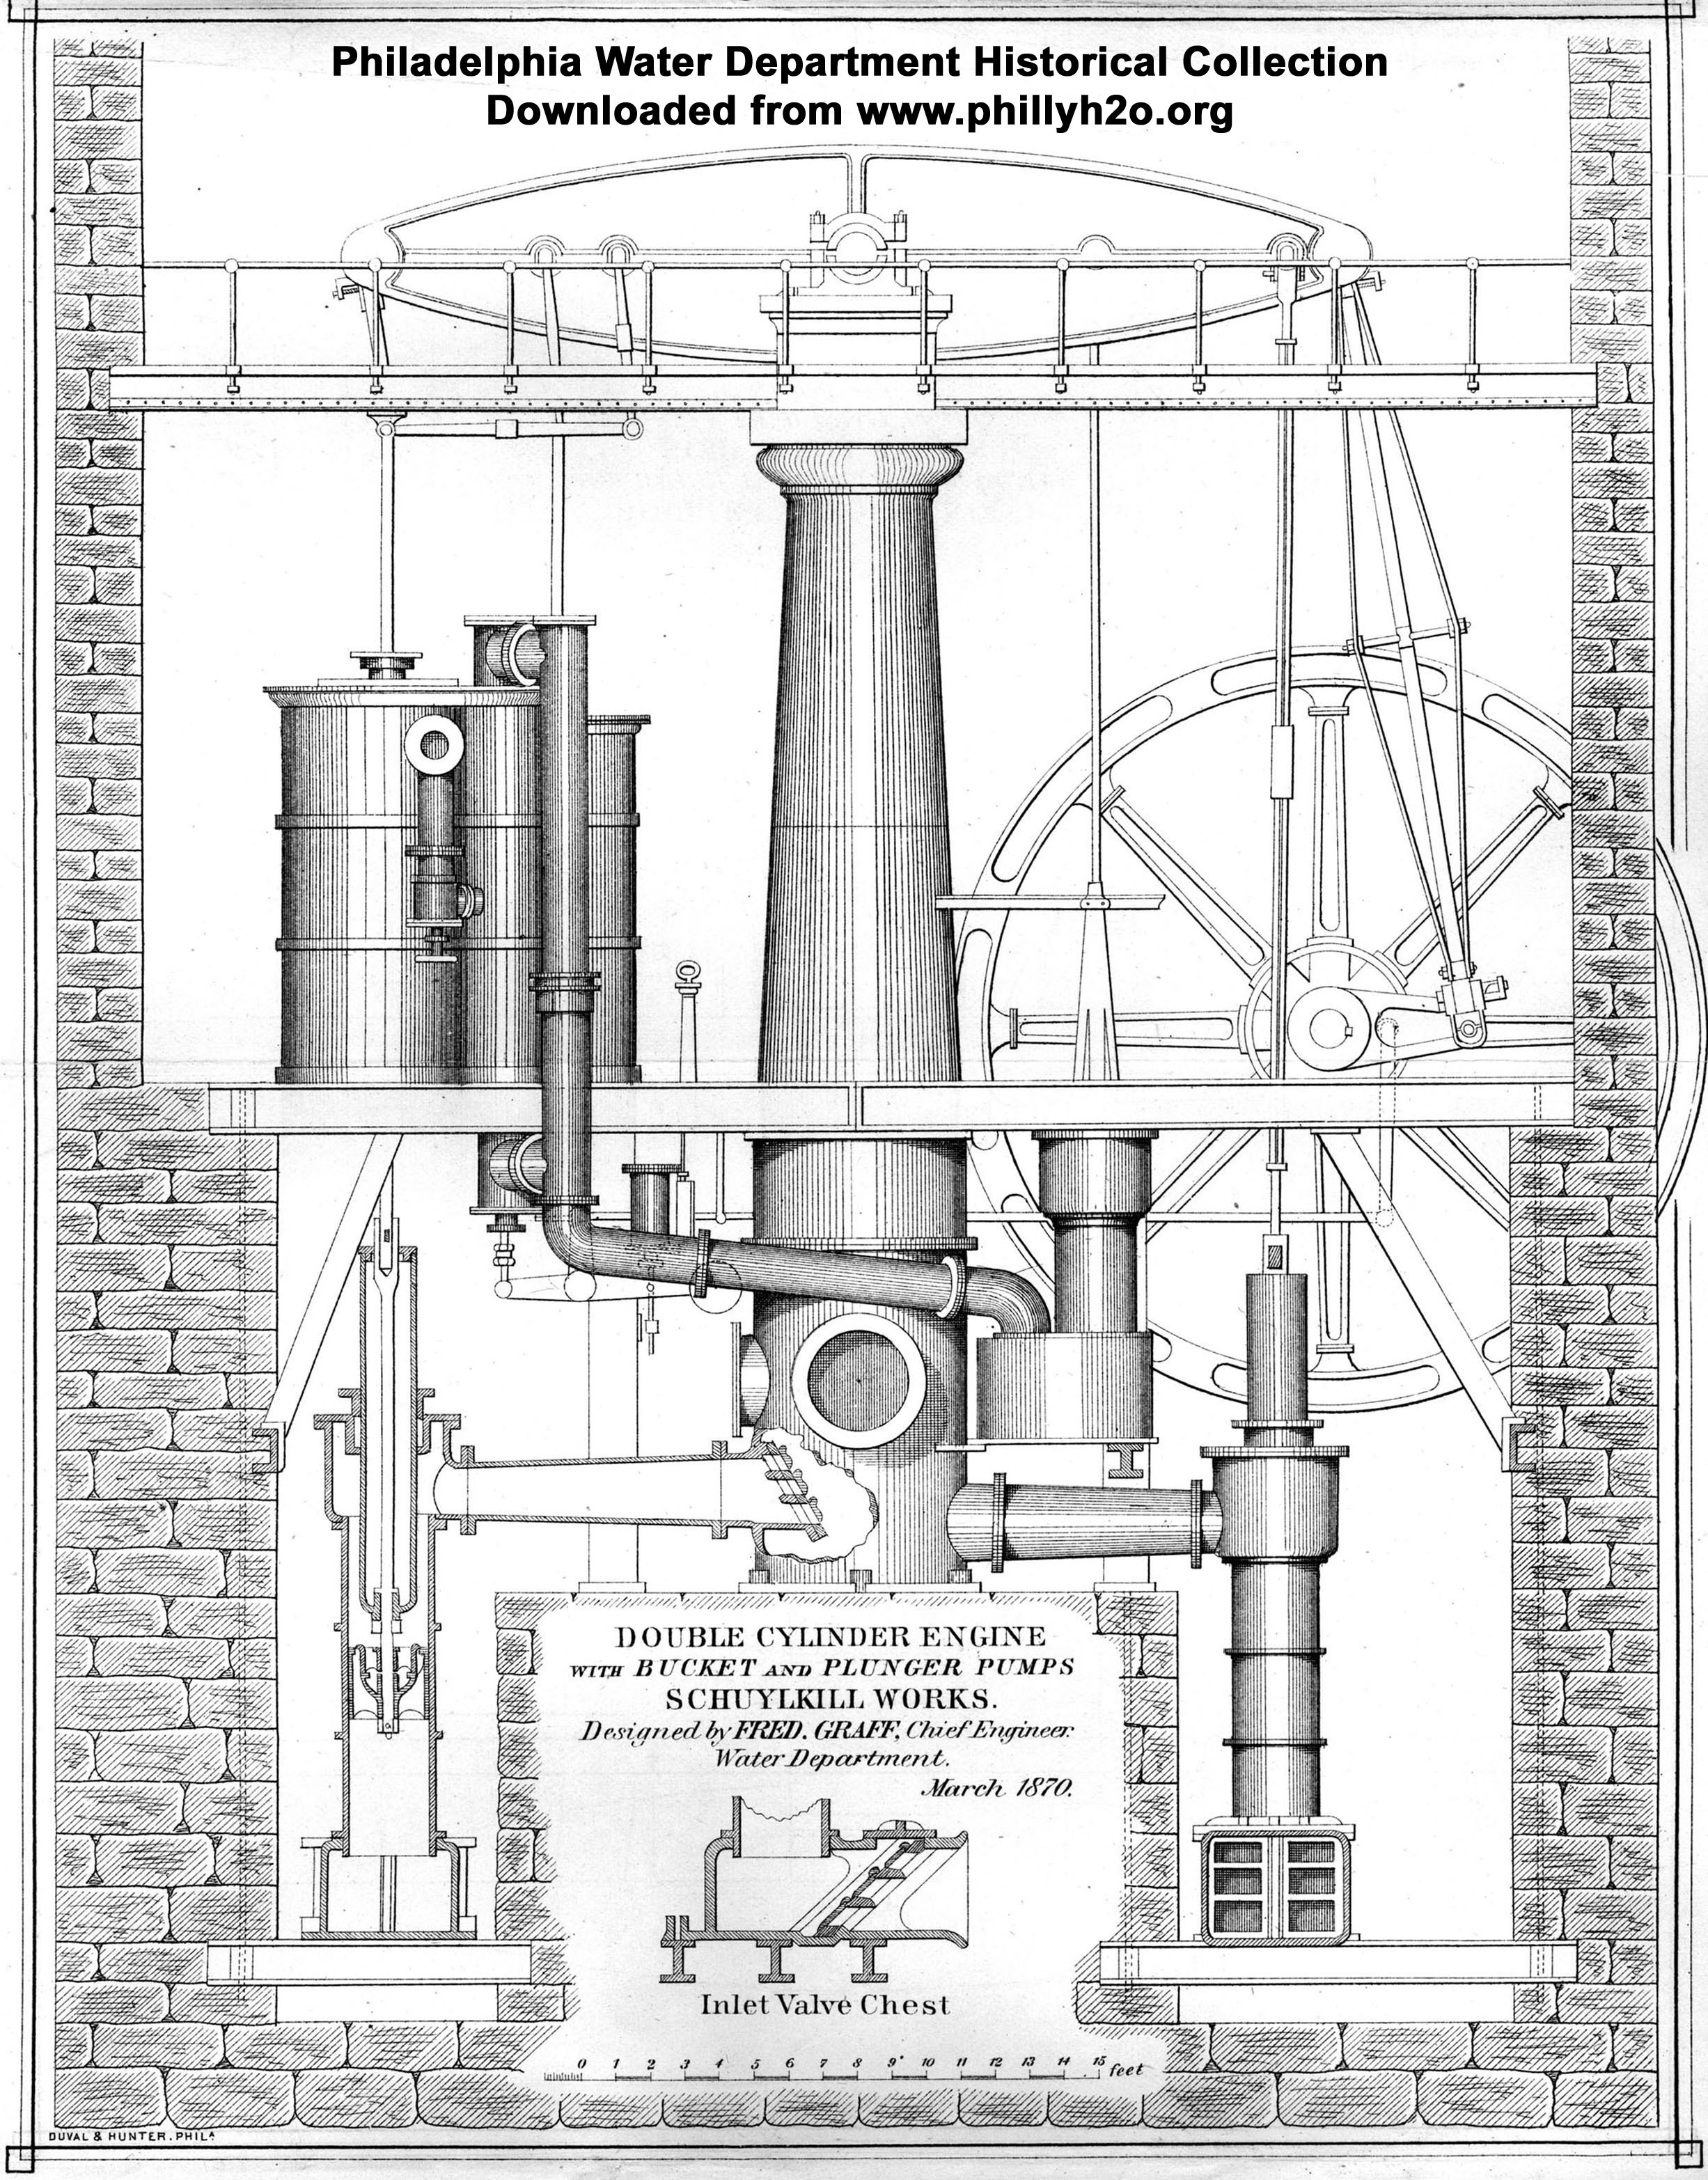 The water works of the city of philadelphia fig24 058 20080000035 grafhistory hsphtm booster pump station diagram booster pump station diagram